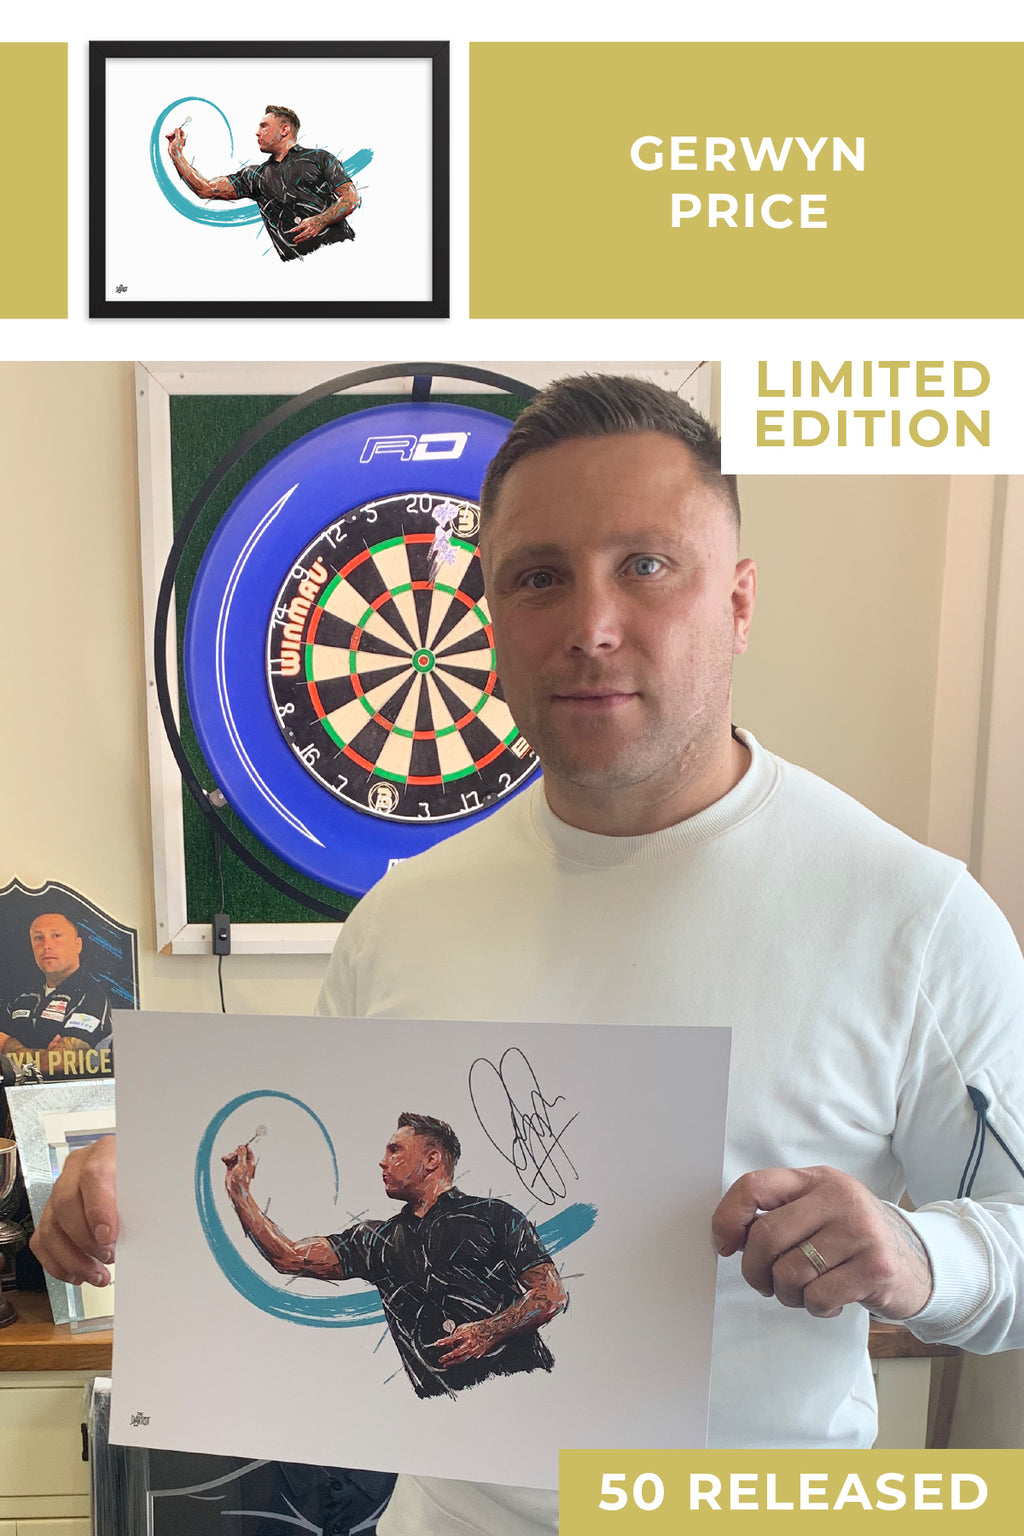 Gerwyn Price Limited Edition Signed Art Print - The Dartist